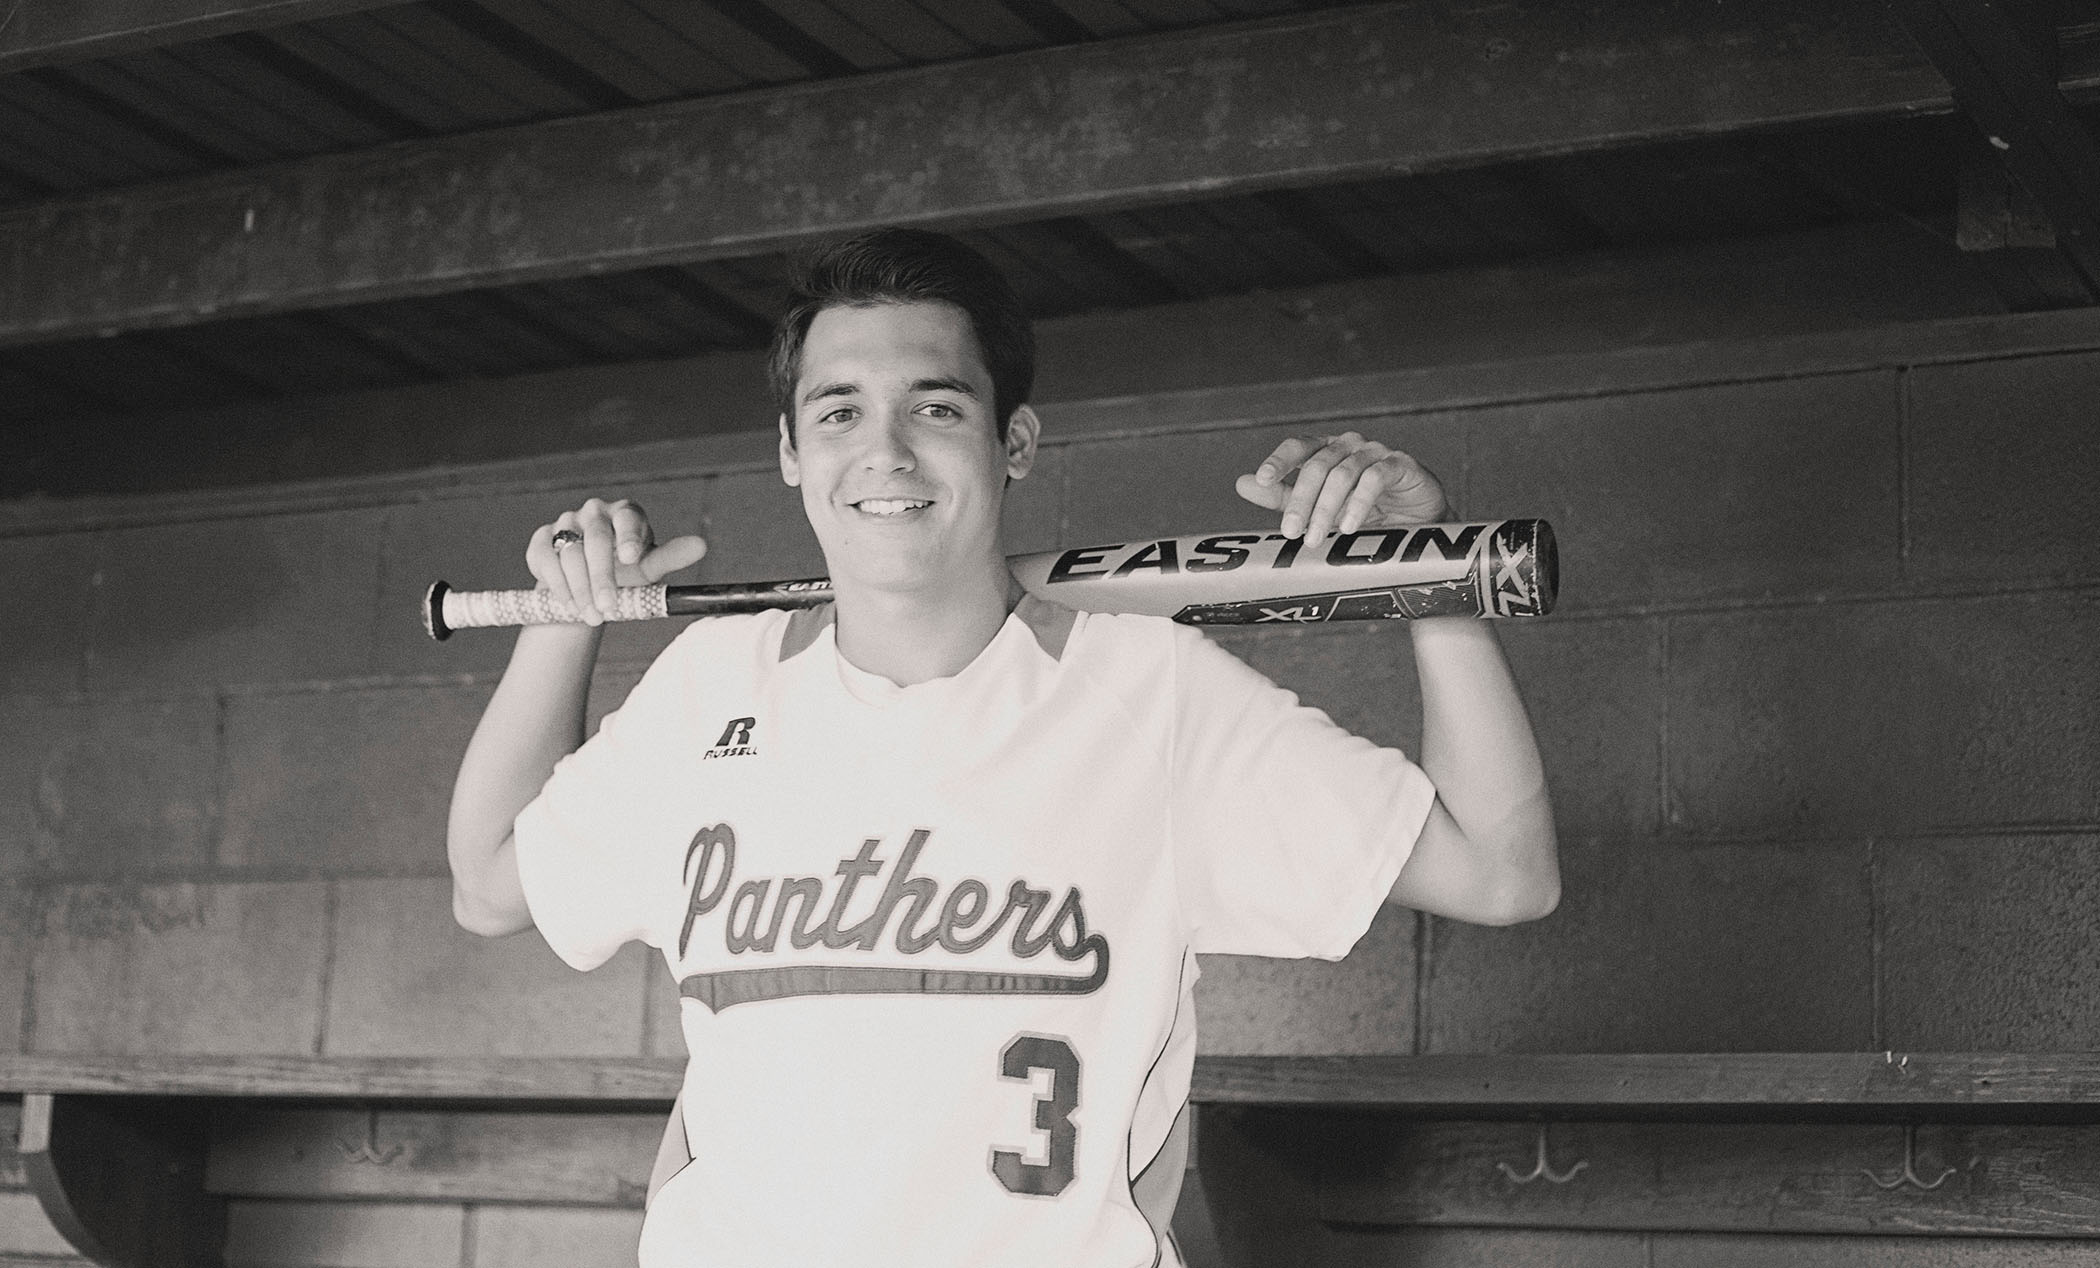 Bradley poses in his Panther baseball uniform.